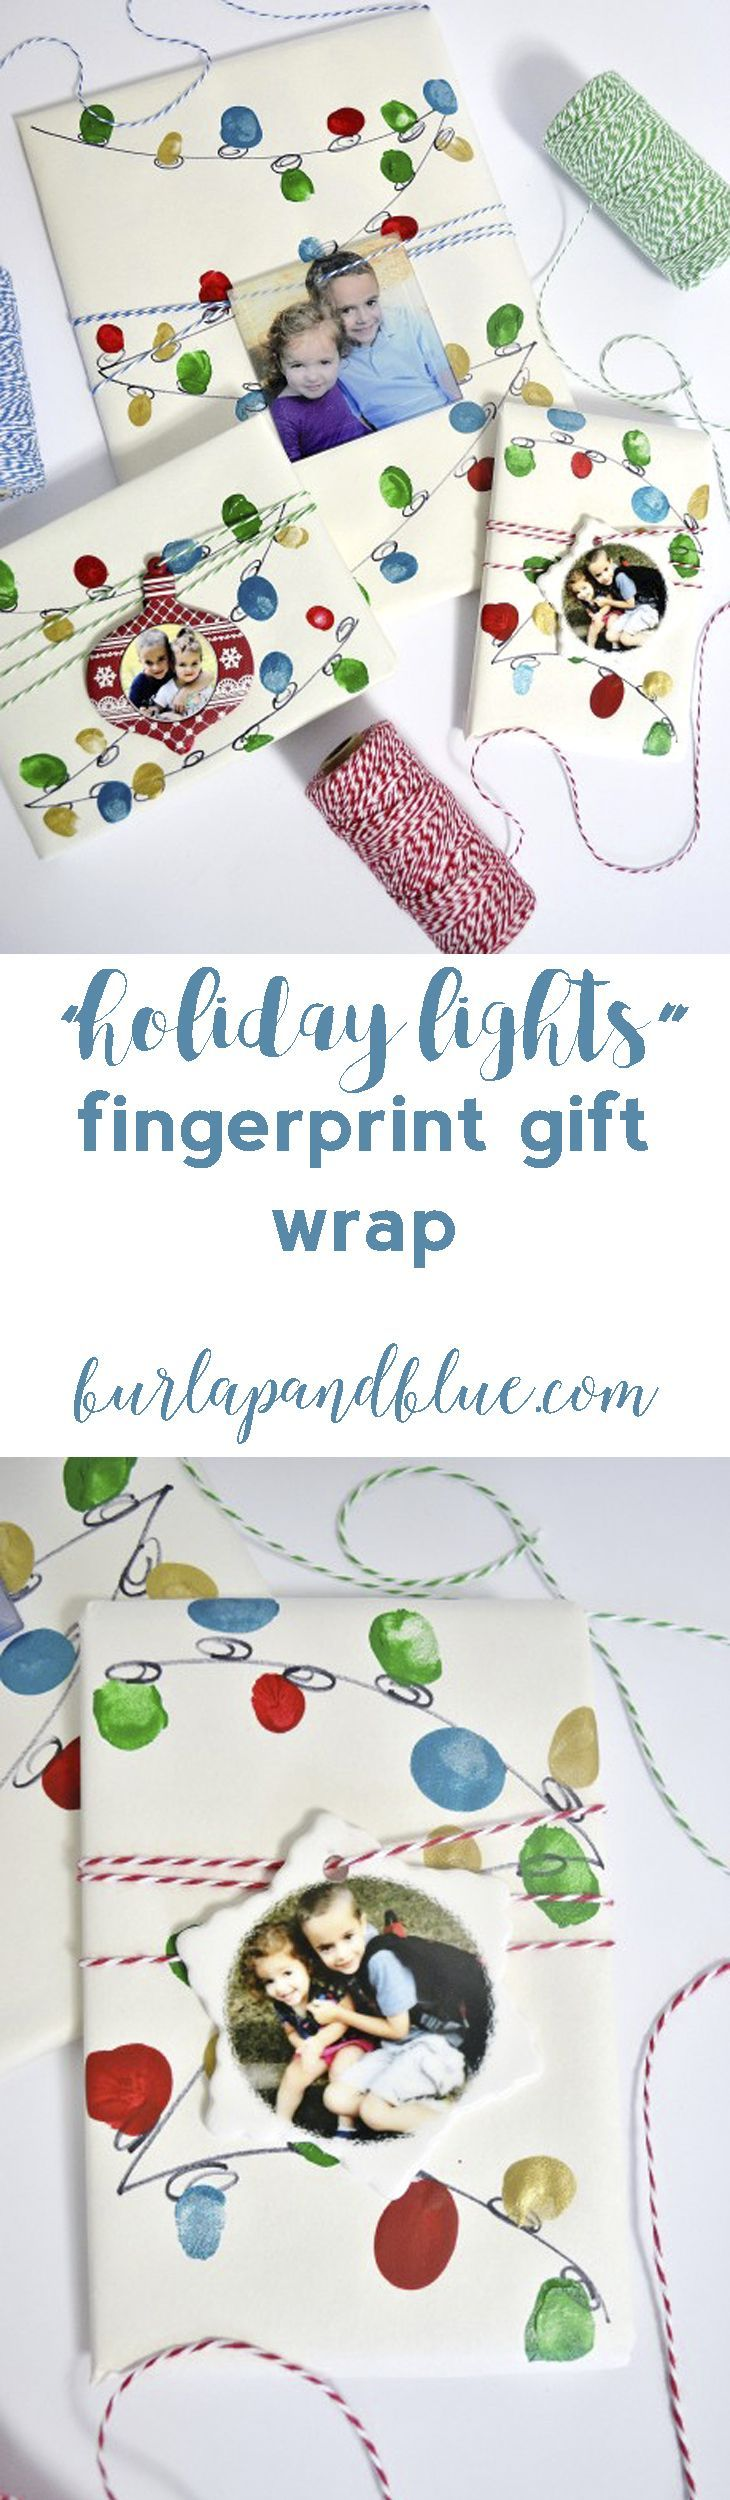 personalized gift ideas + holiday lights gift wrap tutorial with ...